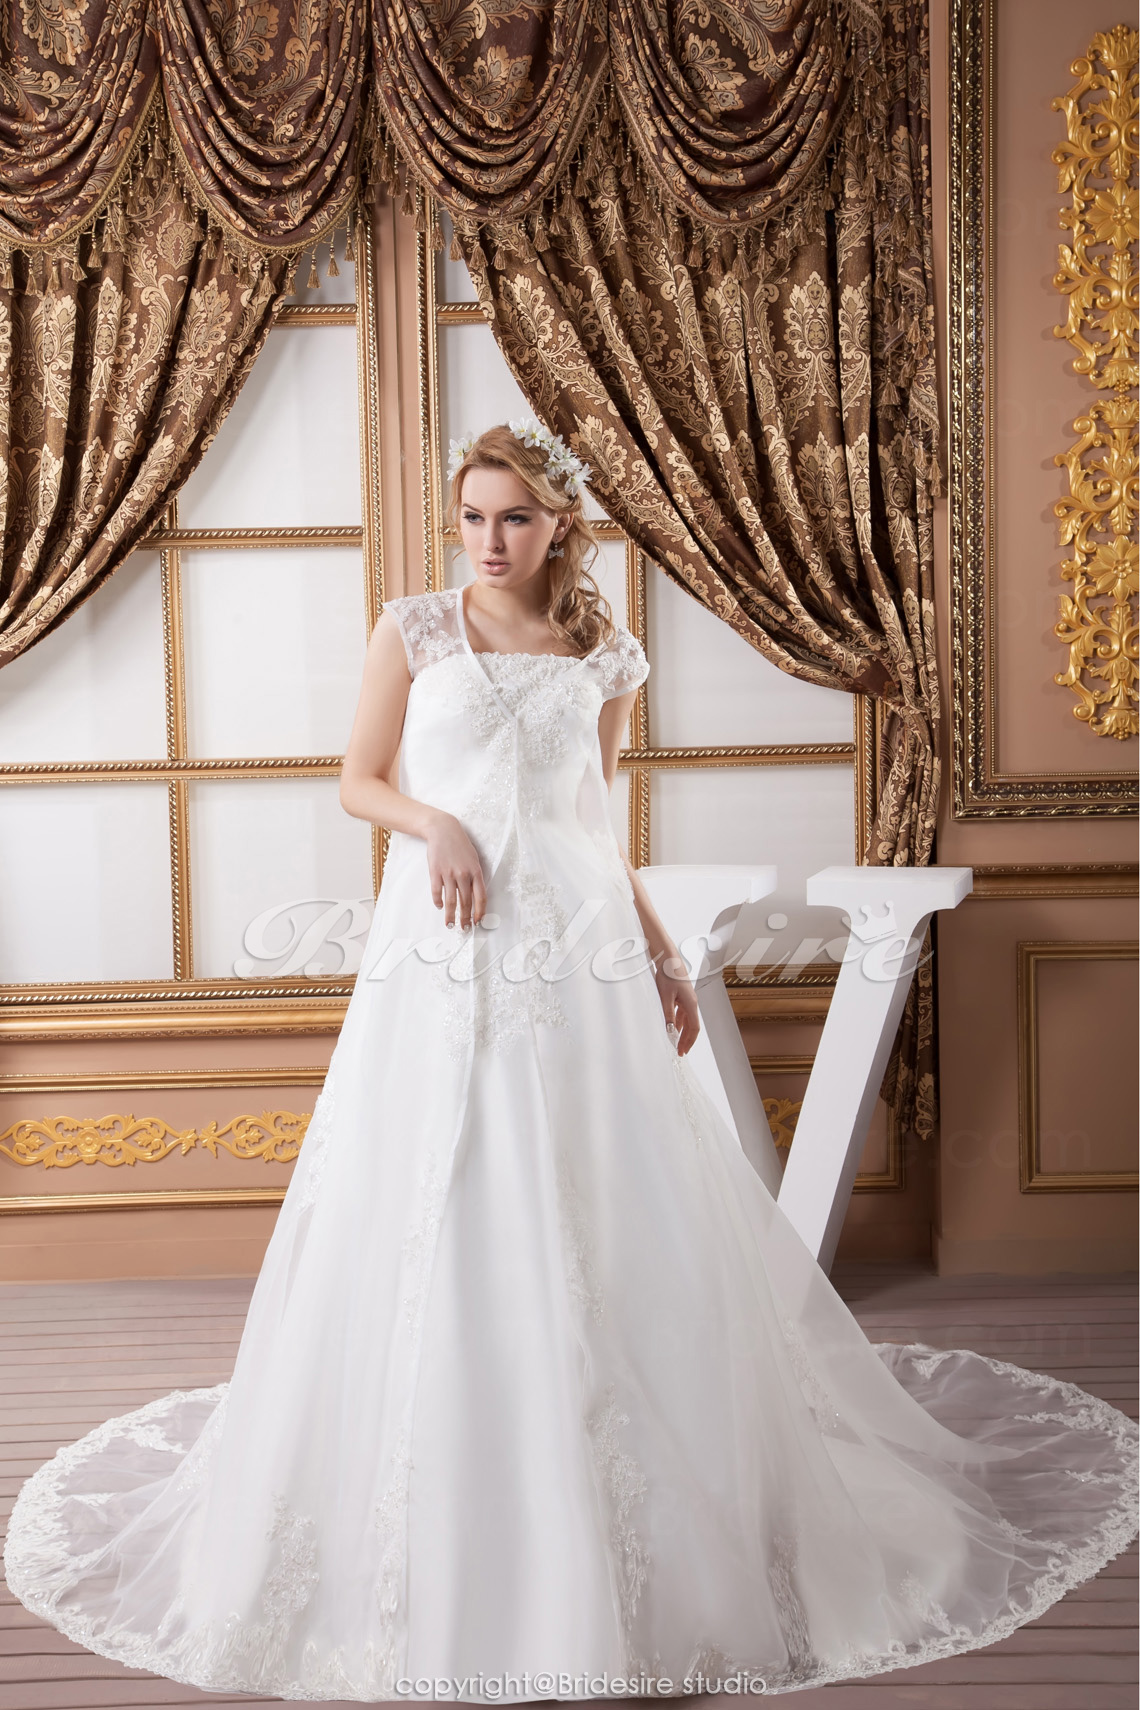 Princess Strapless Floor-length Court Train Sleeveless Satin Lace Wedding Dress